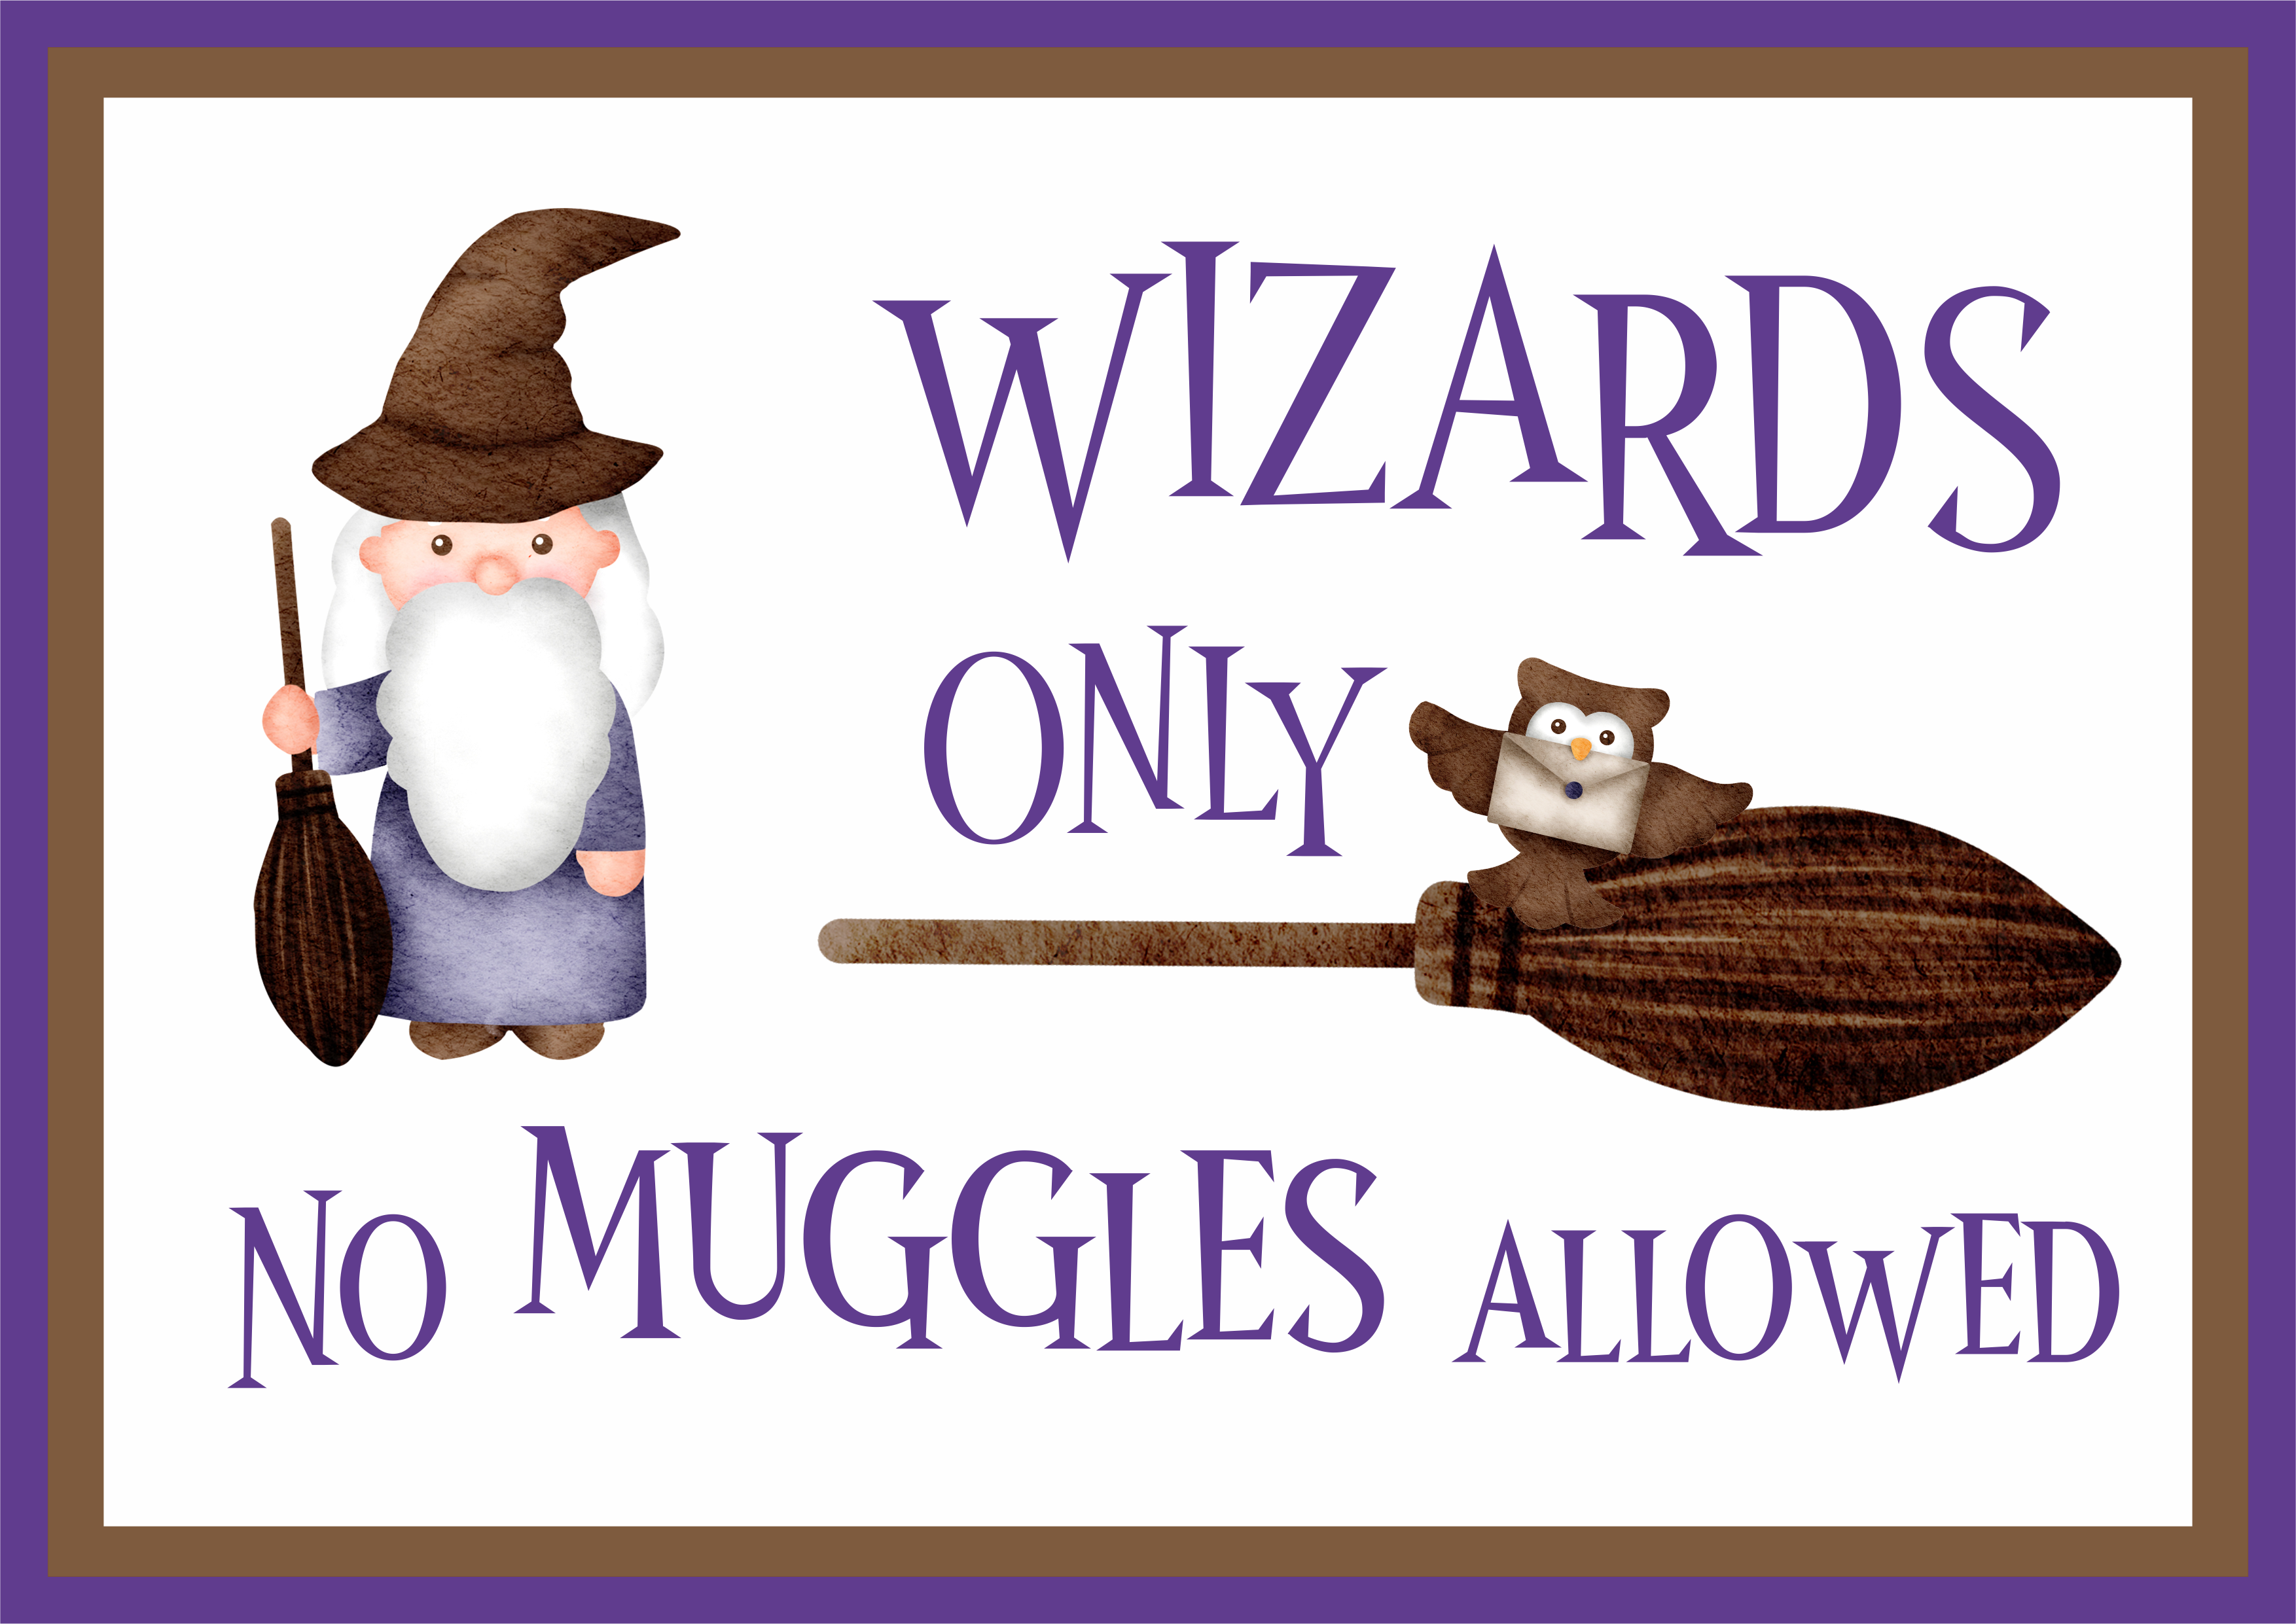 design with wizard, broom and owl